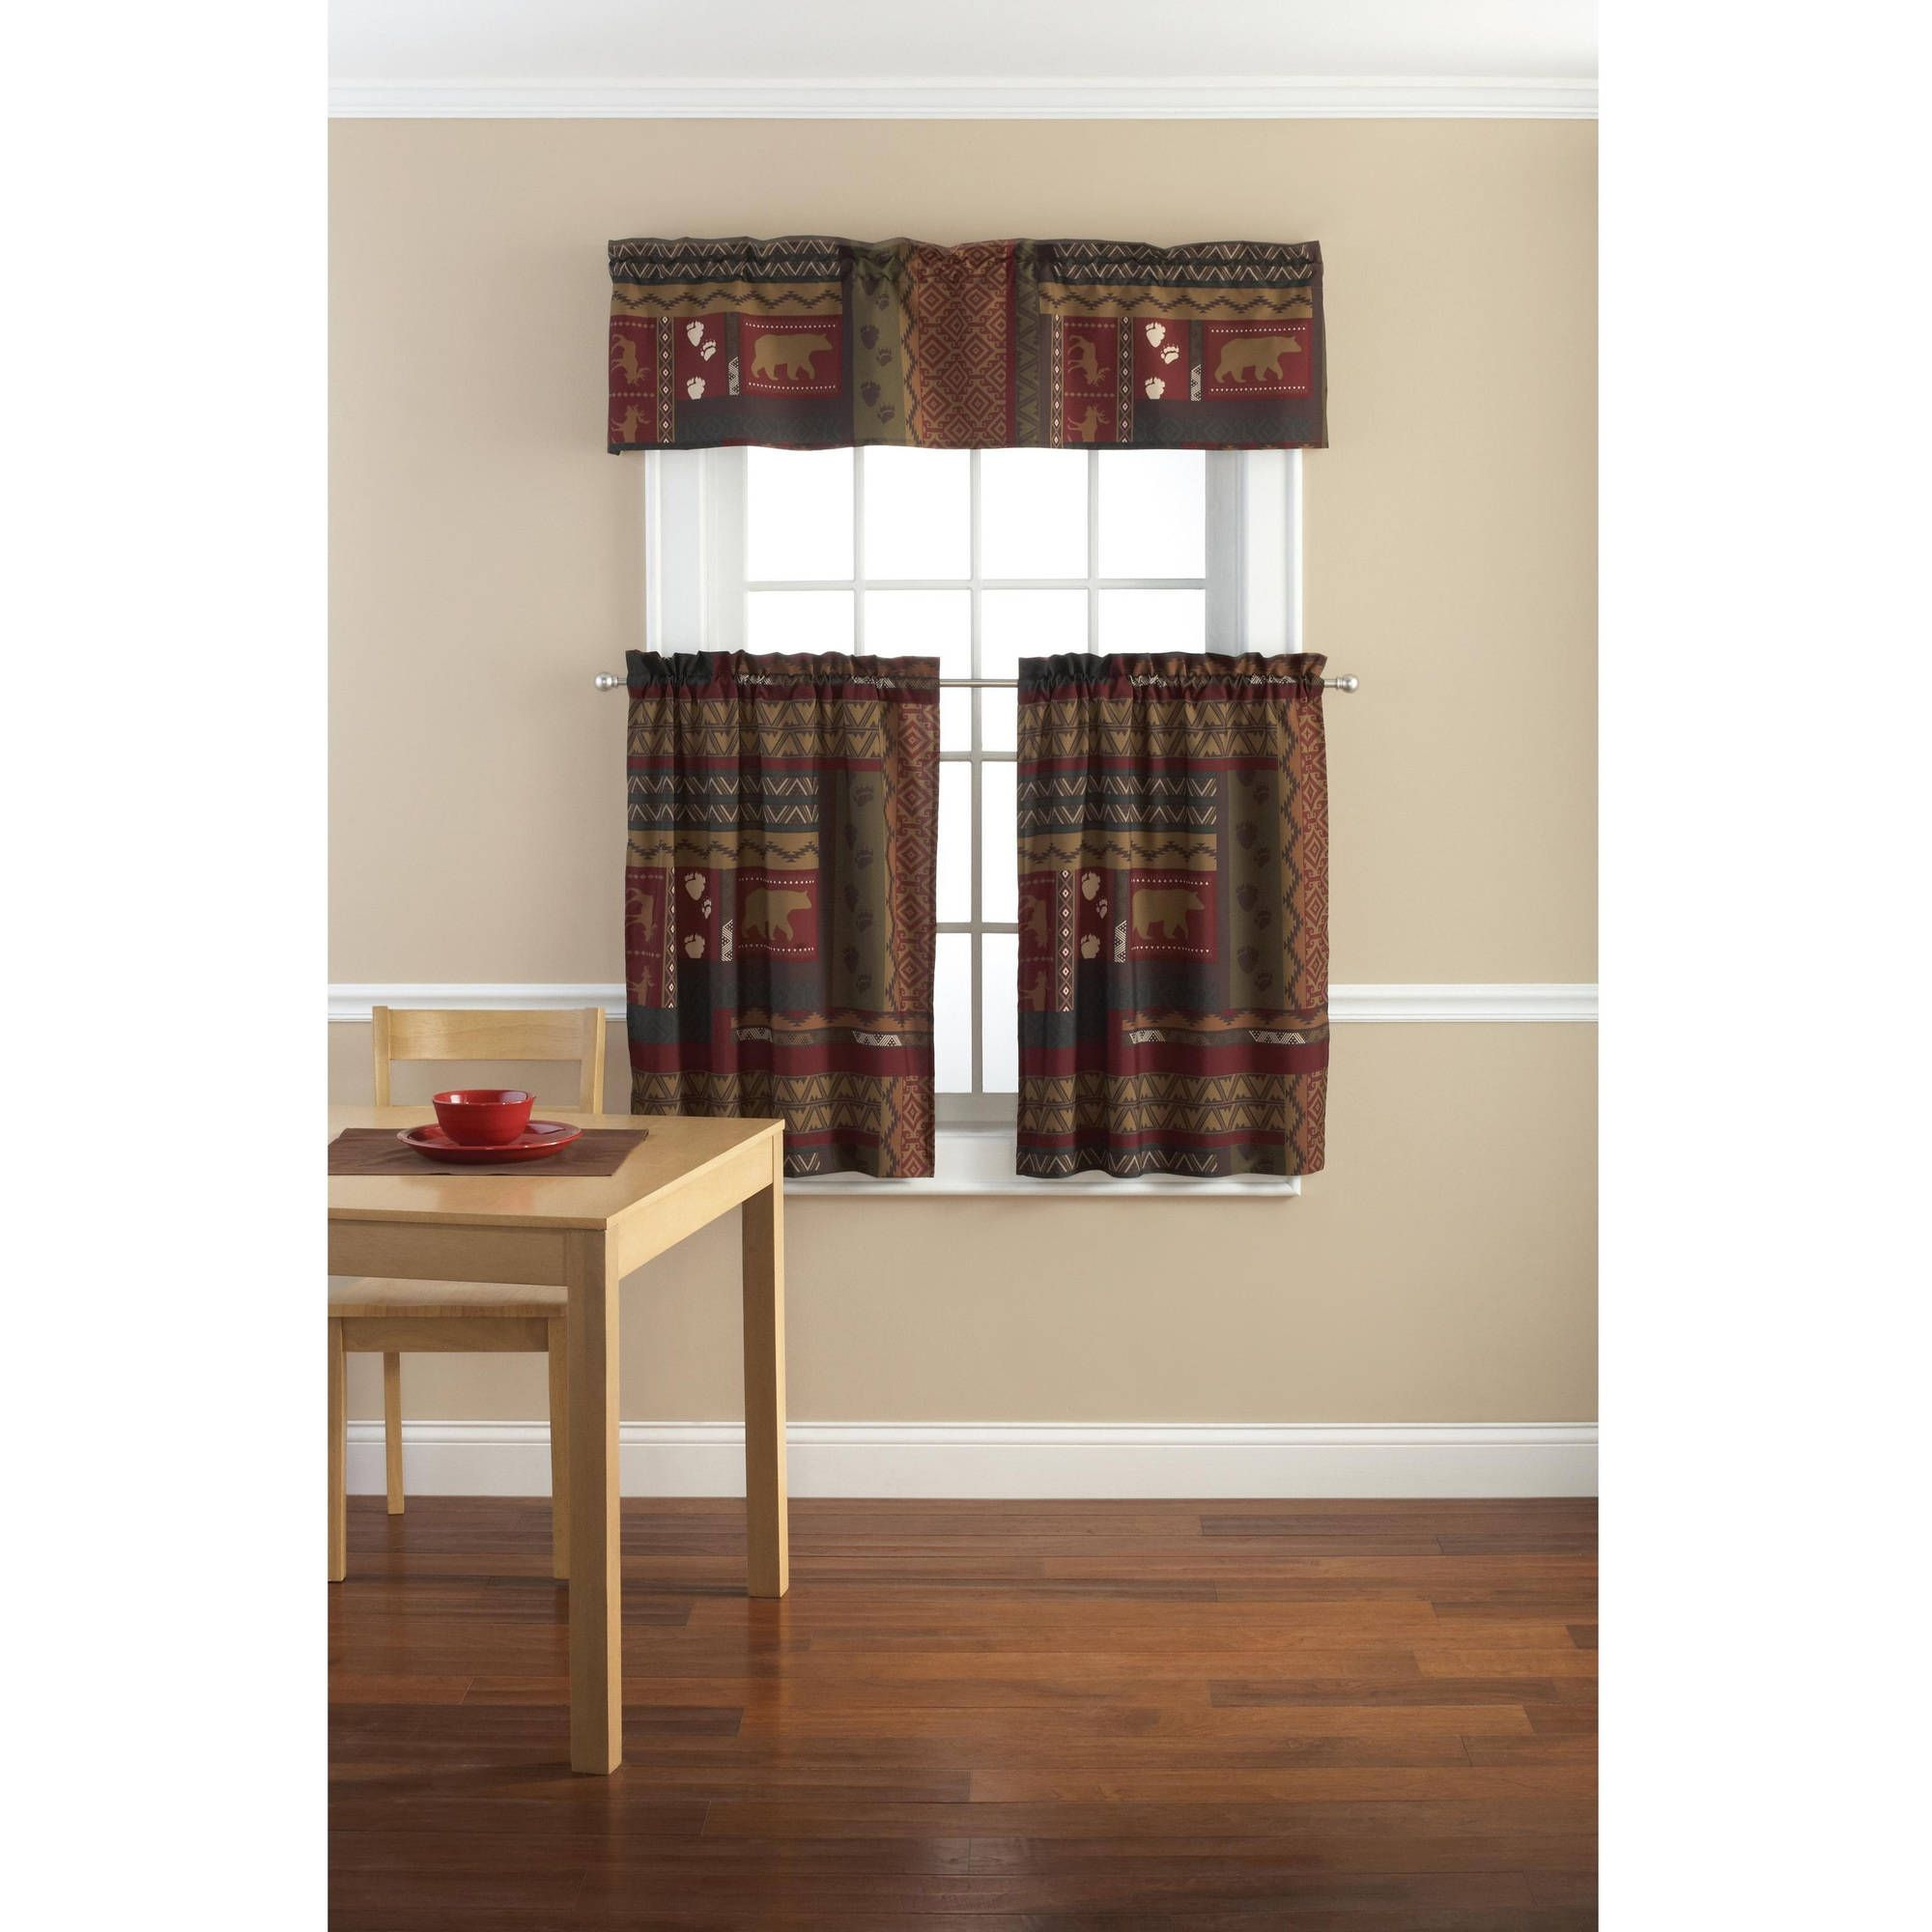 be cabins curtain valance cabin is for about kitchen chinook the to curtains truth revealed woodland